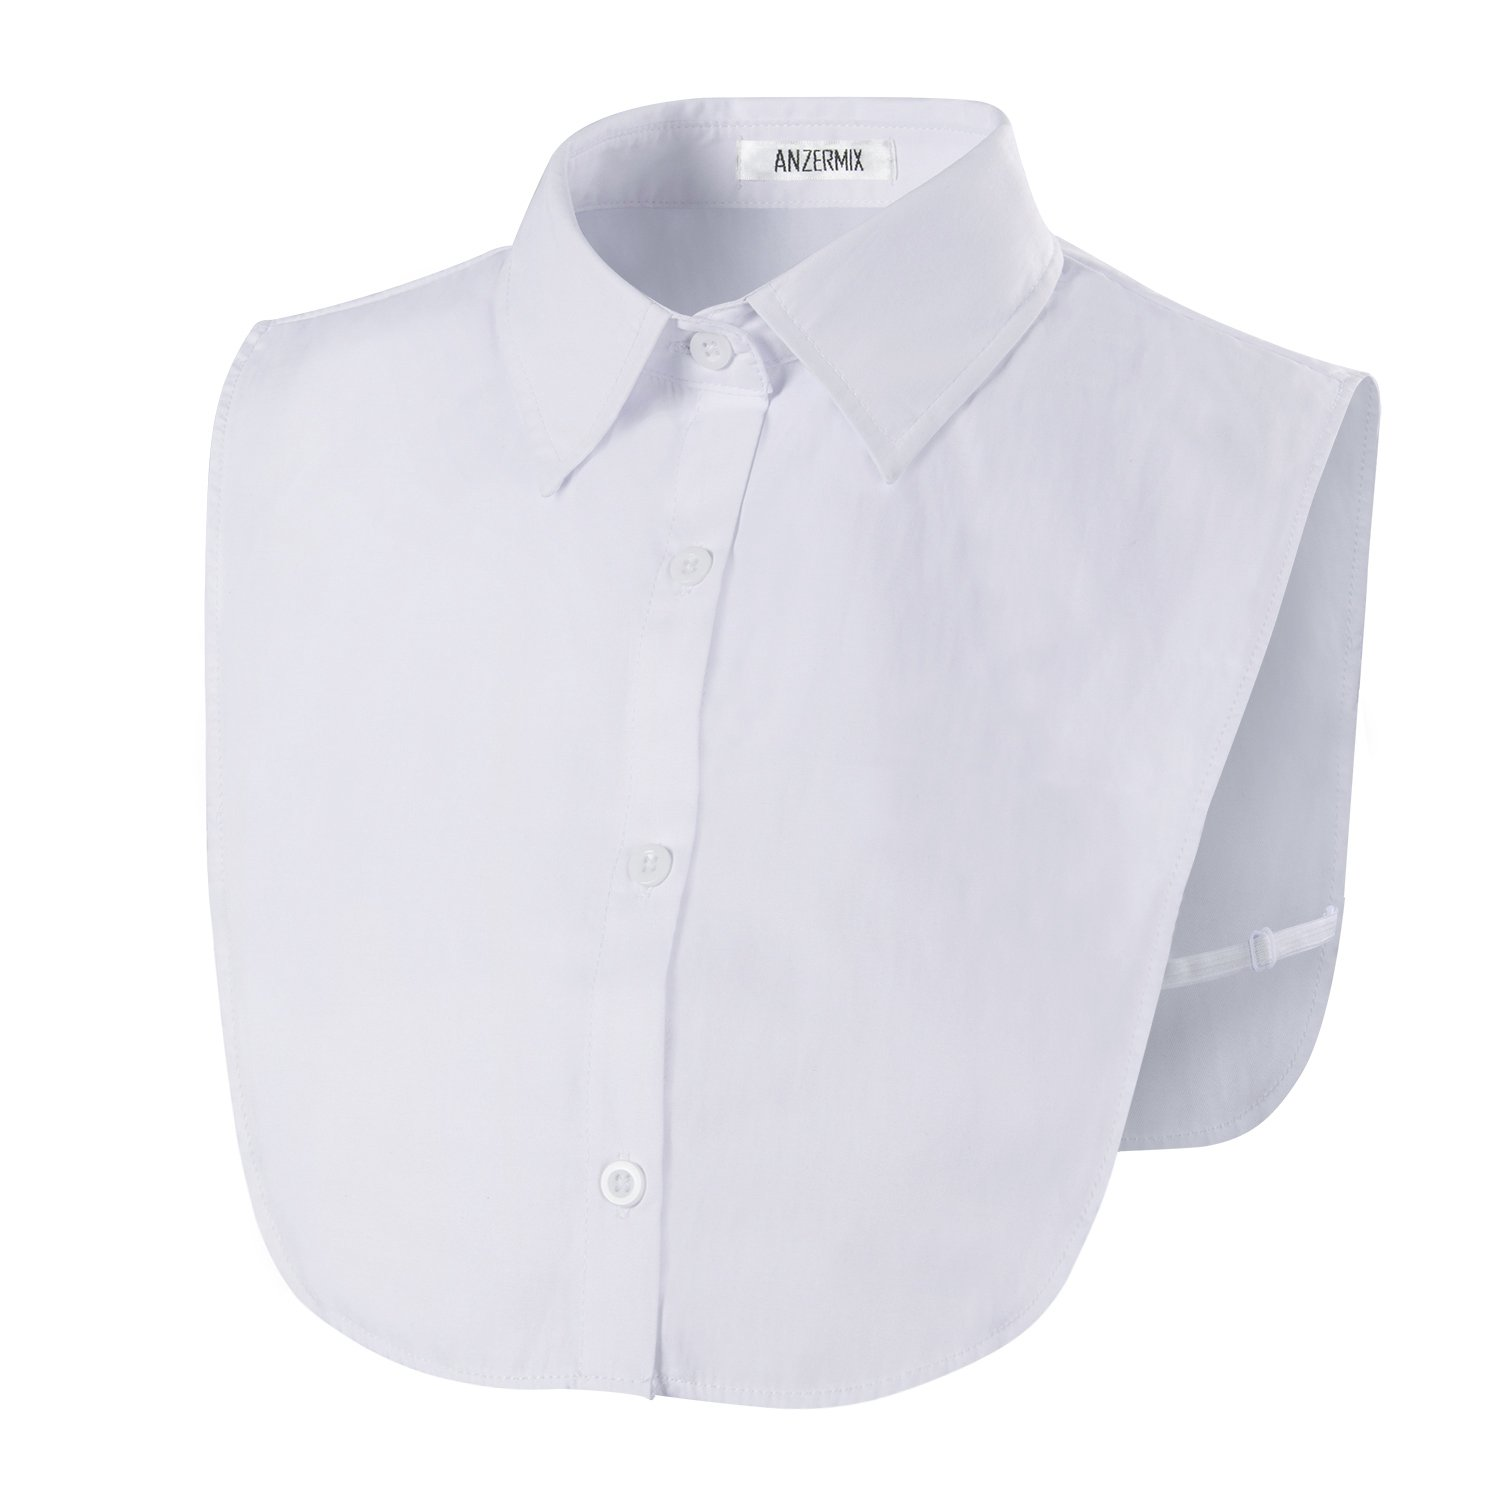 Anzermix Peterpan Fake Collar Detachable Dickey Blouse Half Shirts CA0077